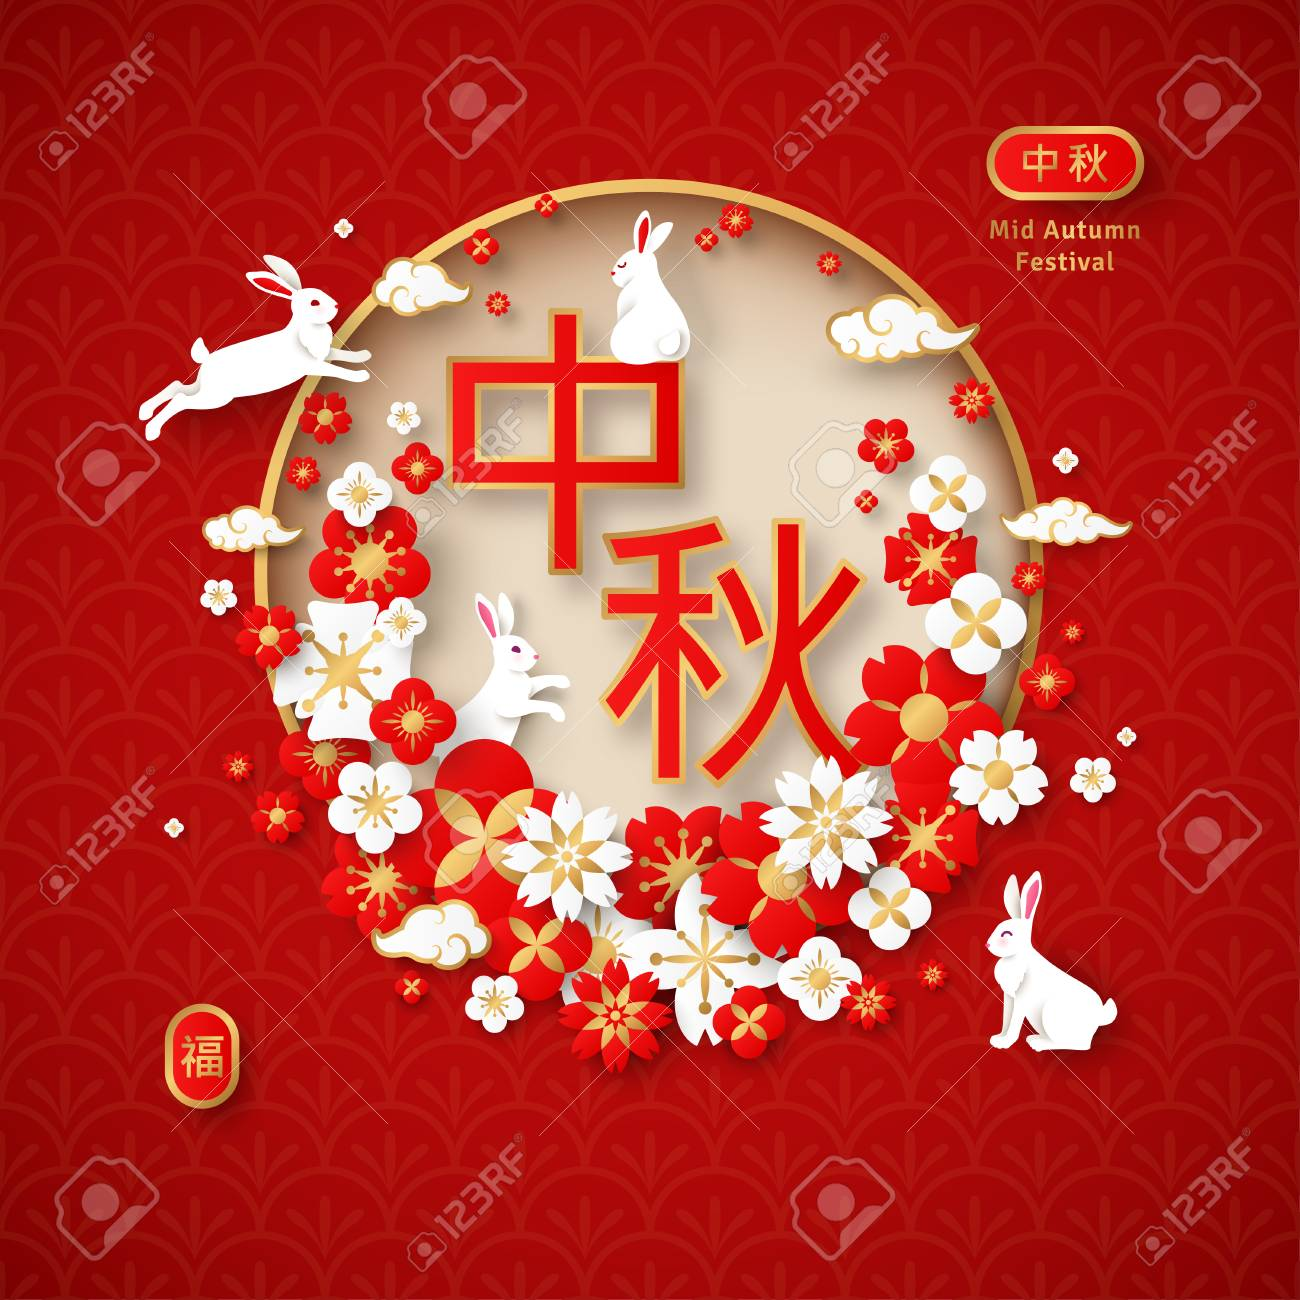 White cute rabbits with red and gold flowers in circle full moon frame for Chuseok festival. Big hieroglyph translation is Mid Autumn. Hieroglyph below is fortune, blessing. Vector illustration. - 110402019